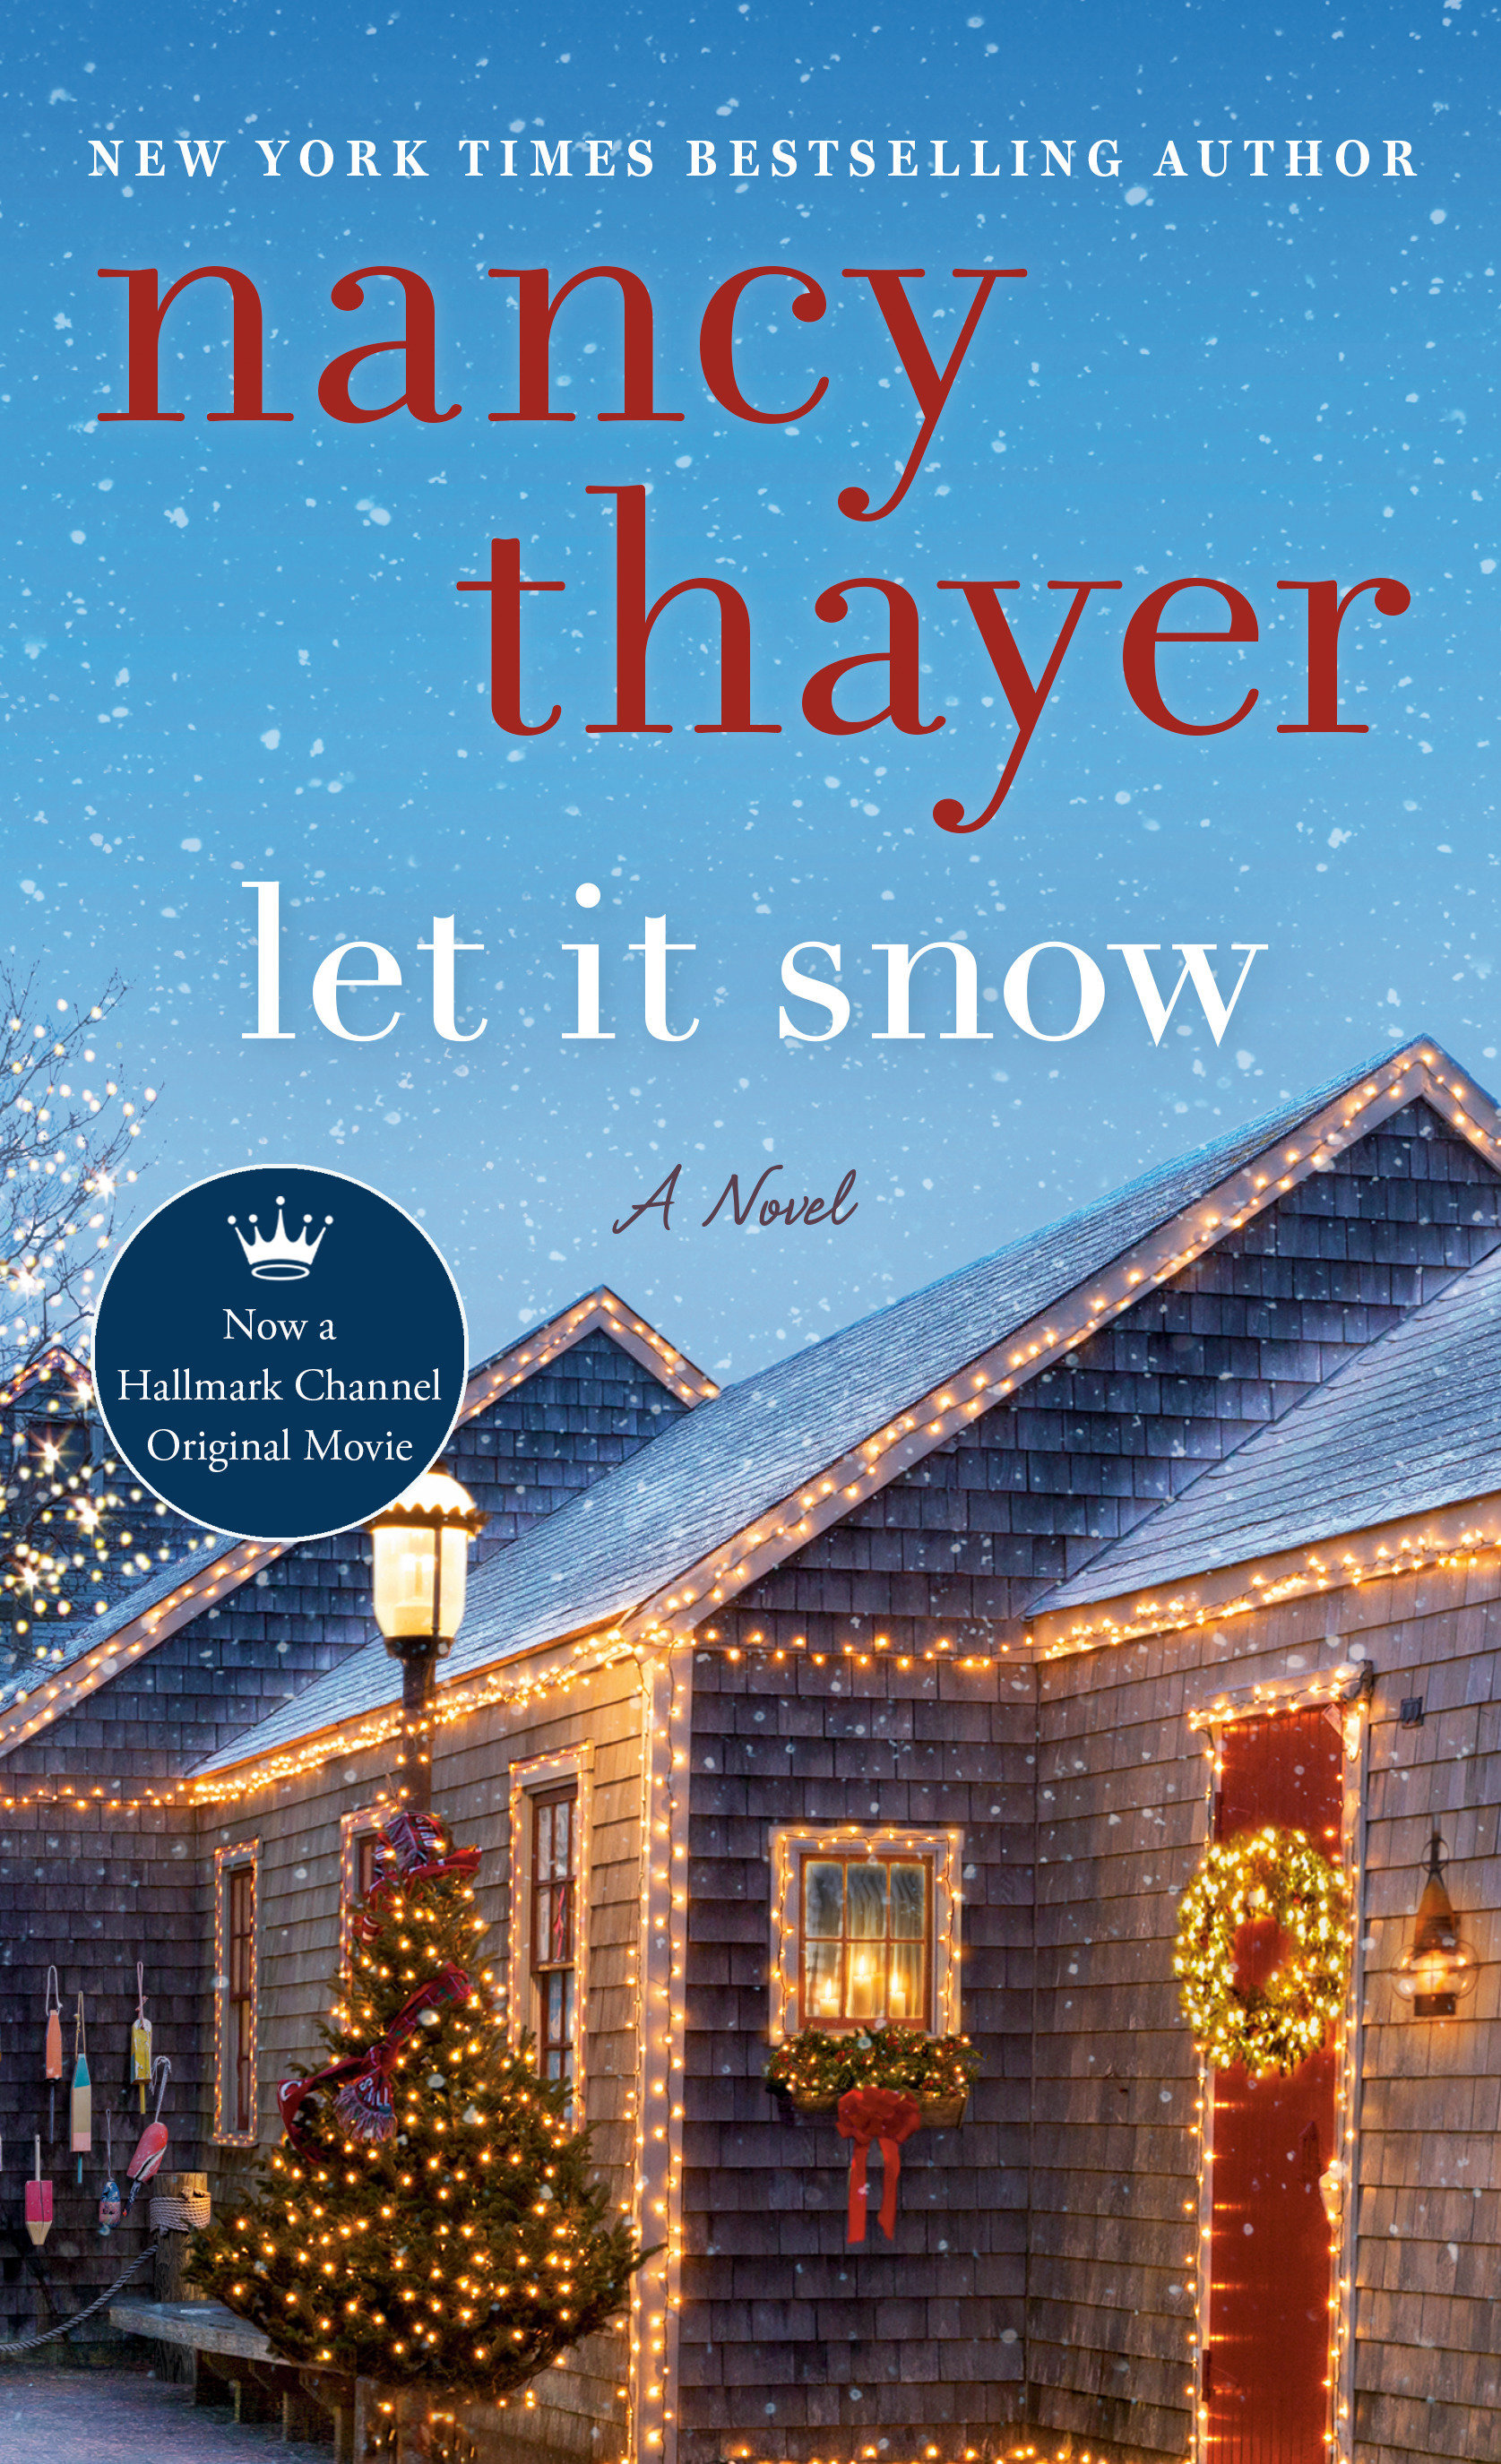 Let it snow cover image